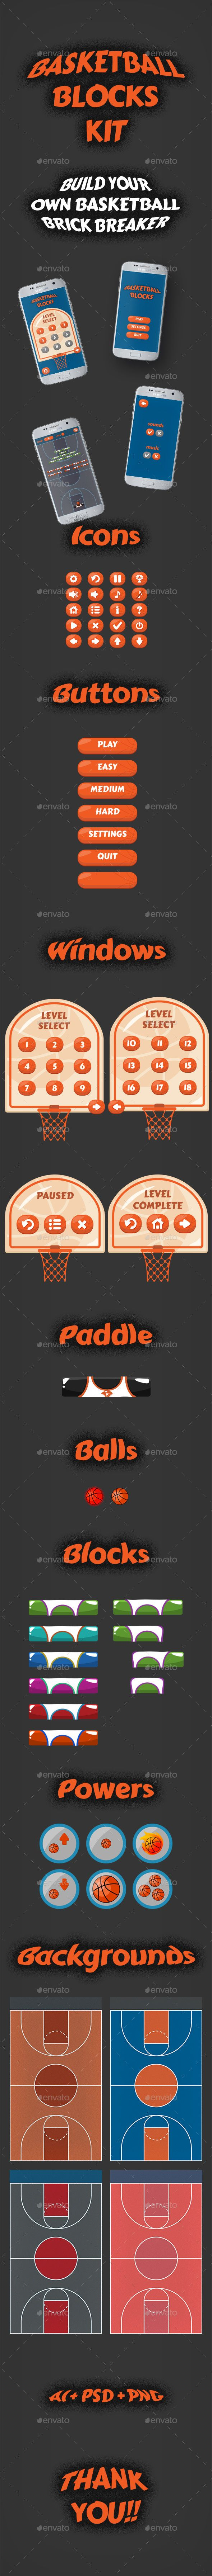 #Basketball Brick Breaking Game Kit - Game Kits #Game Assets Download here: https://graphicriver.net/item/basketball-brick-breaking-game-kit/19655091?ref=alena994